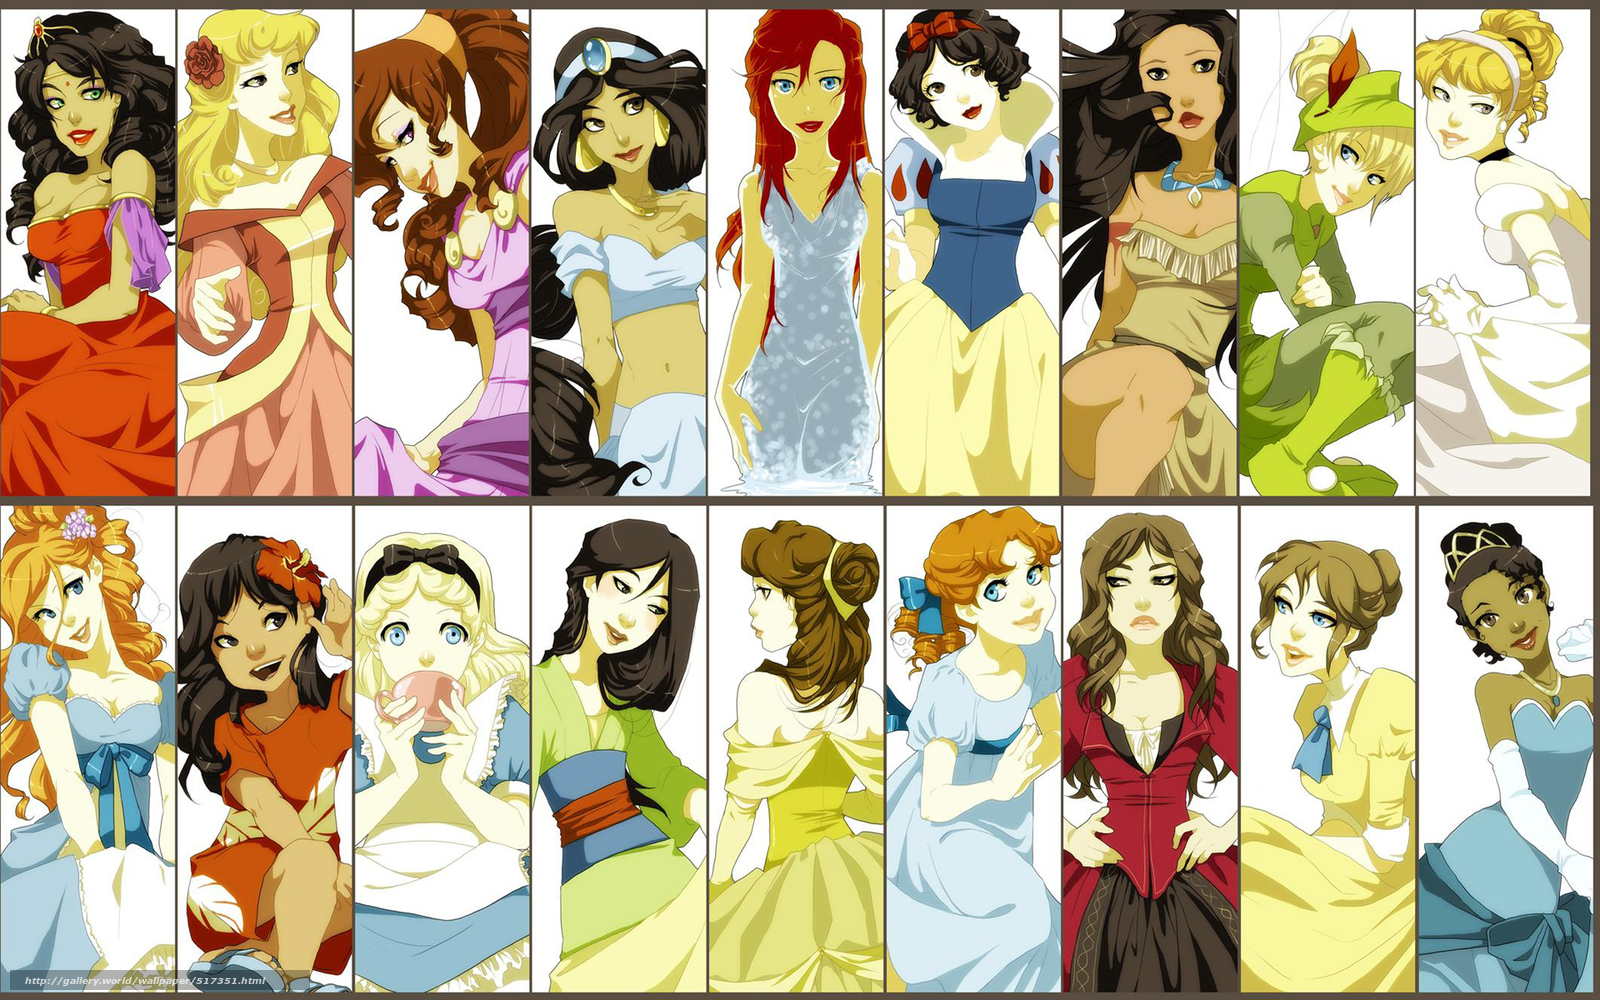 Download wallpaper disney cartoon characters free desktop - Female cartoon characters wallpapers ...